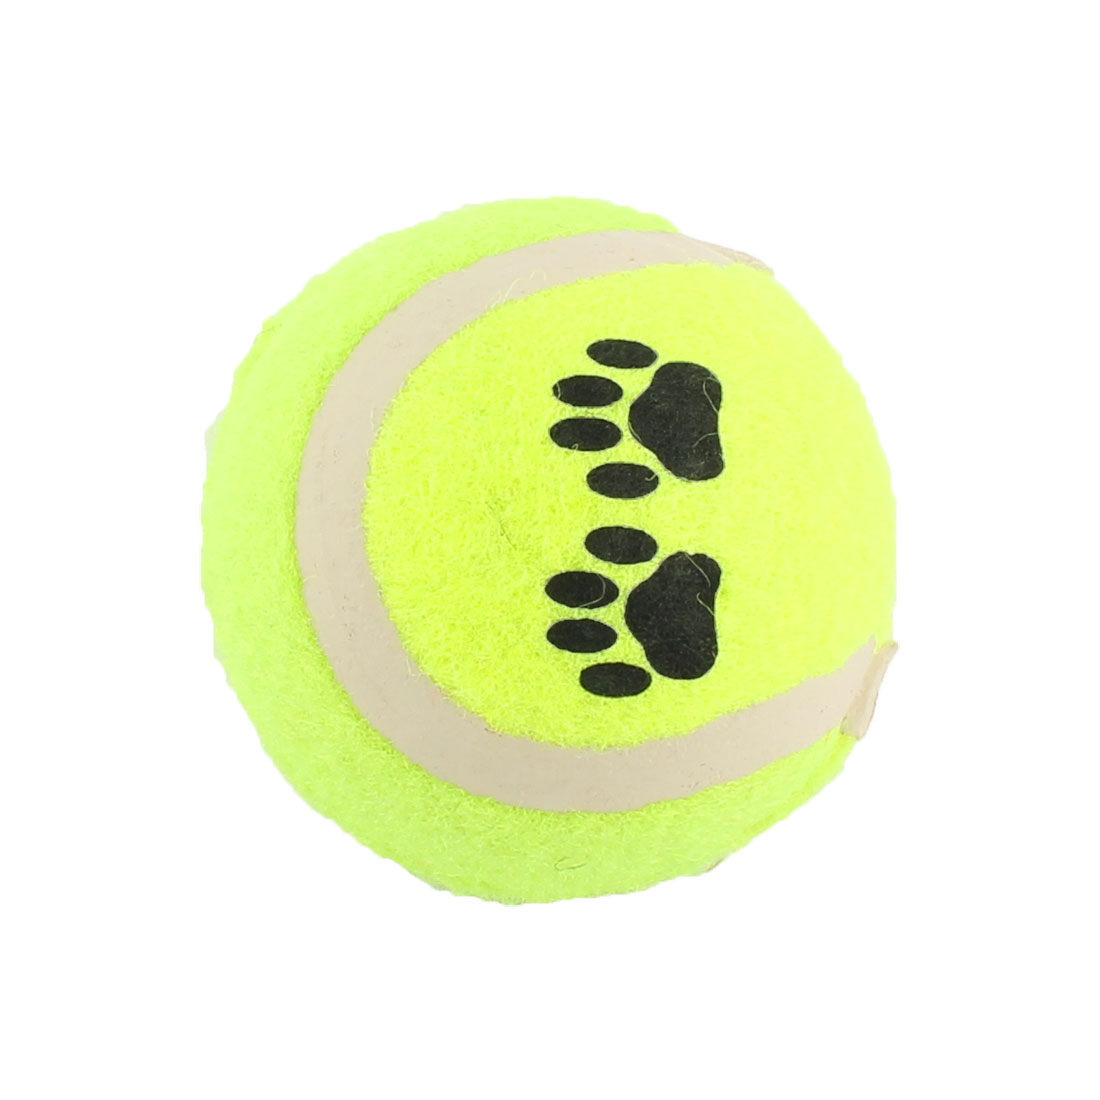 Tennis Shaped Paw Pattern Pet Dog Cat Squeaky Squeaker Sound Training Ball Chew Toy